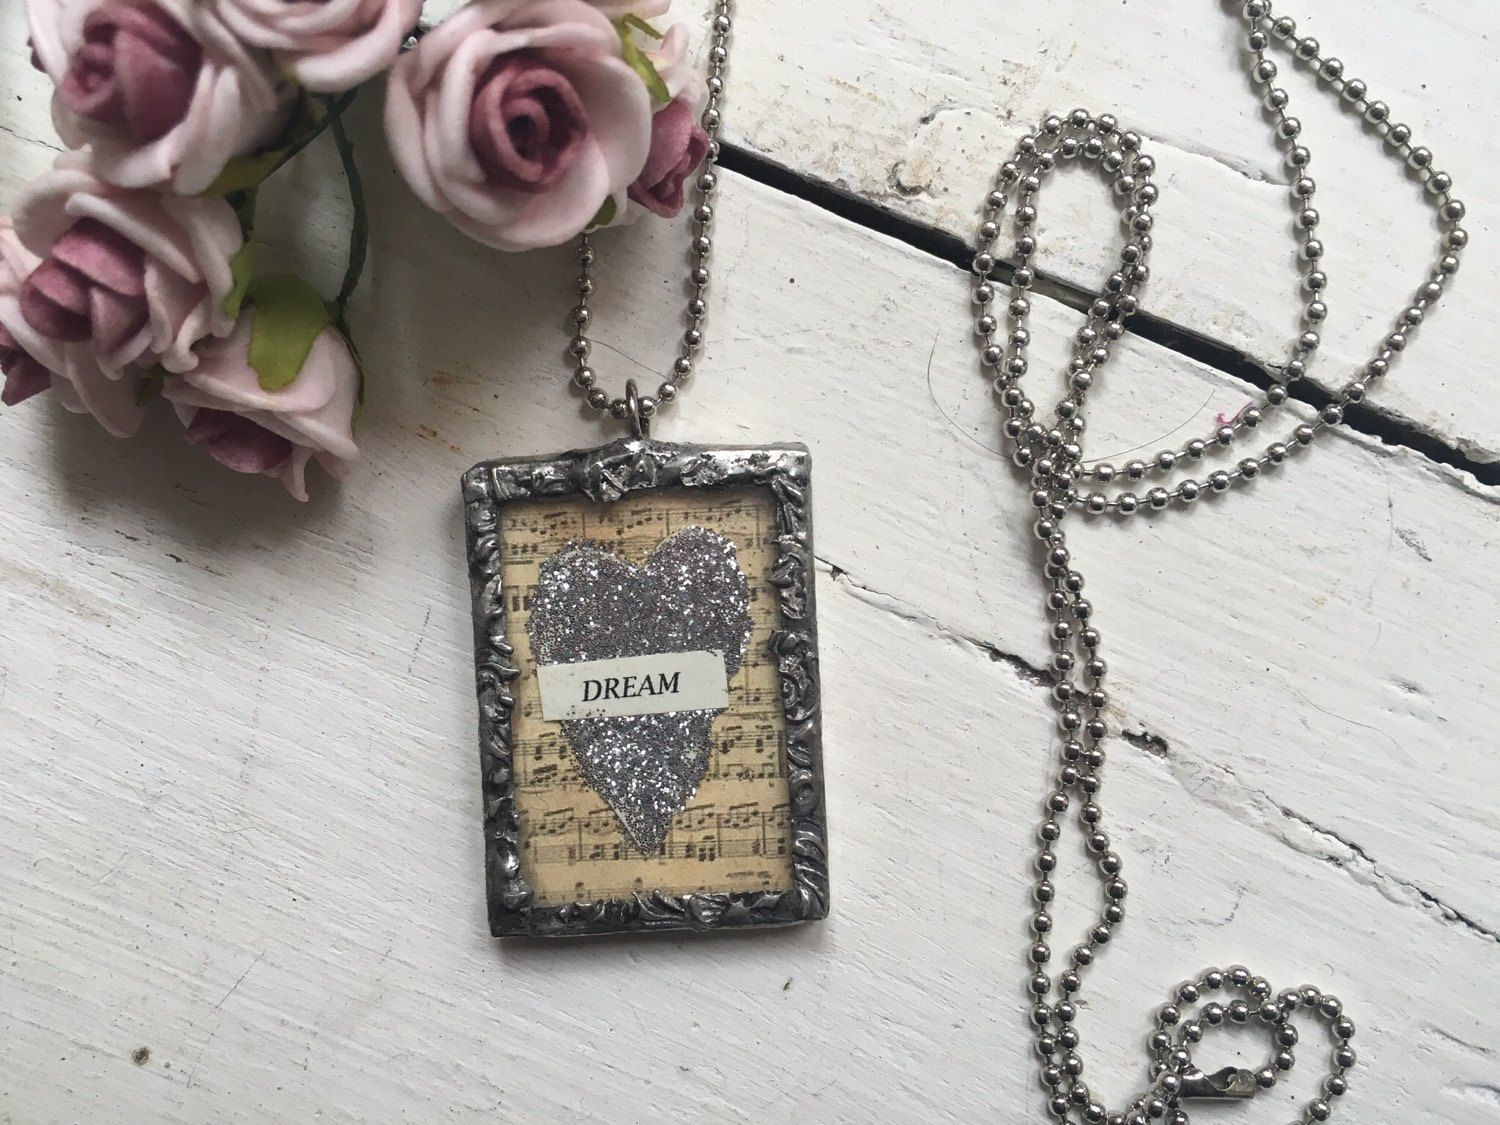 Dream soldered necklace by thequeenbeehandmade on Etsy